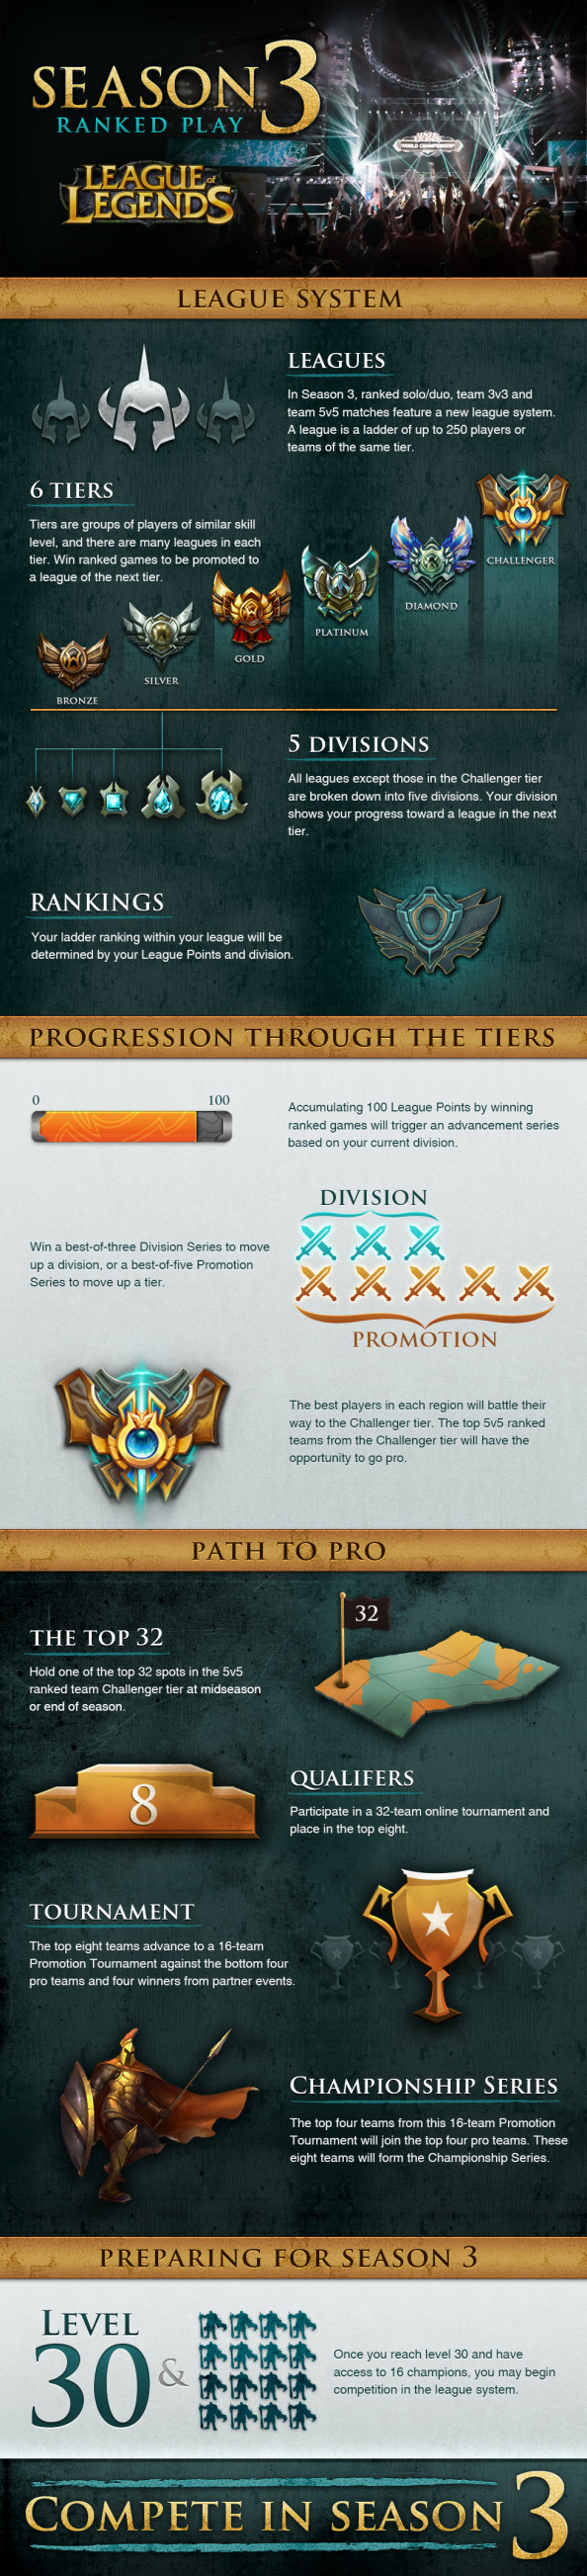 League of Legends Season 3 Ranked Play Infographic